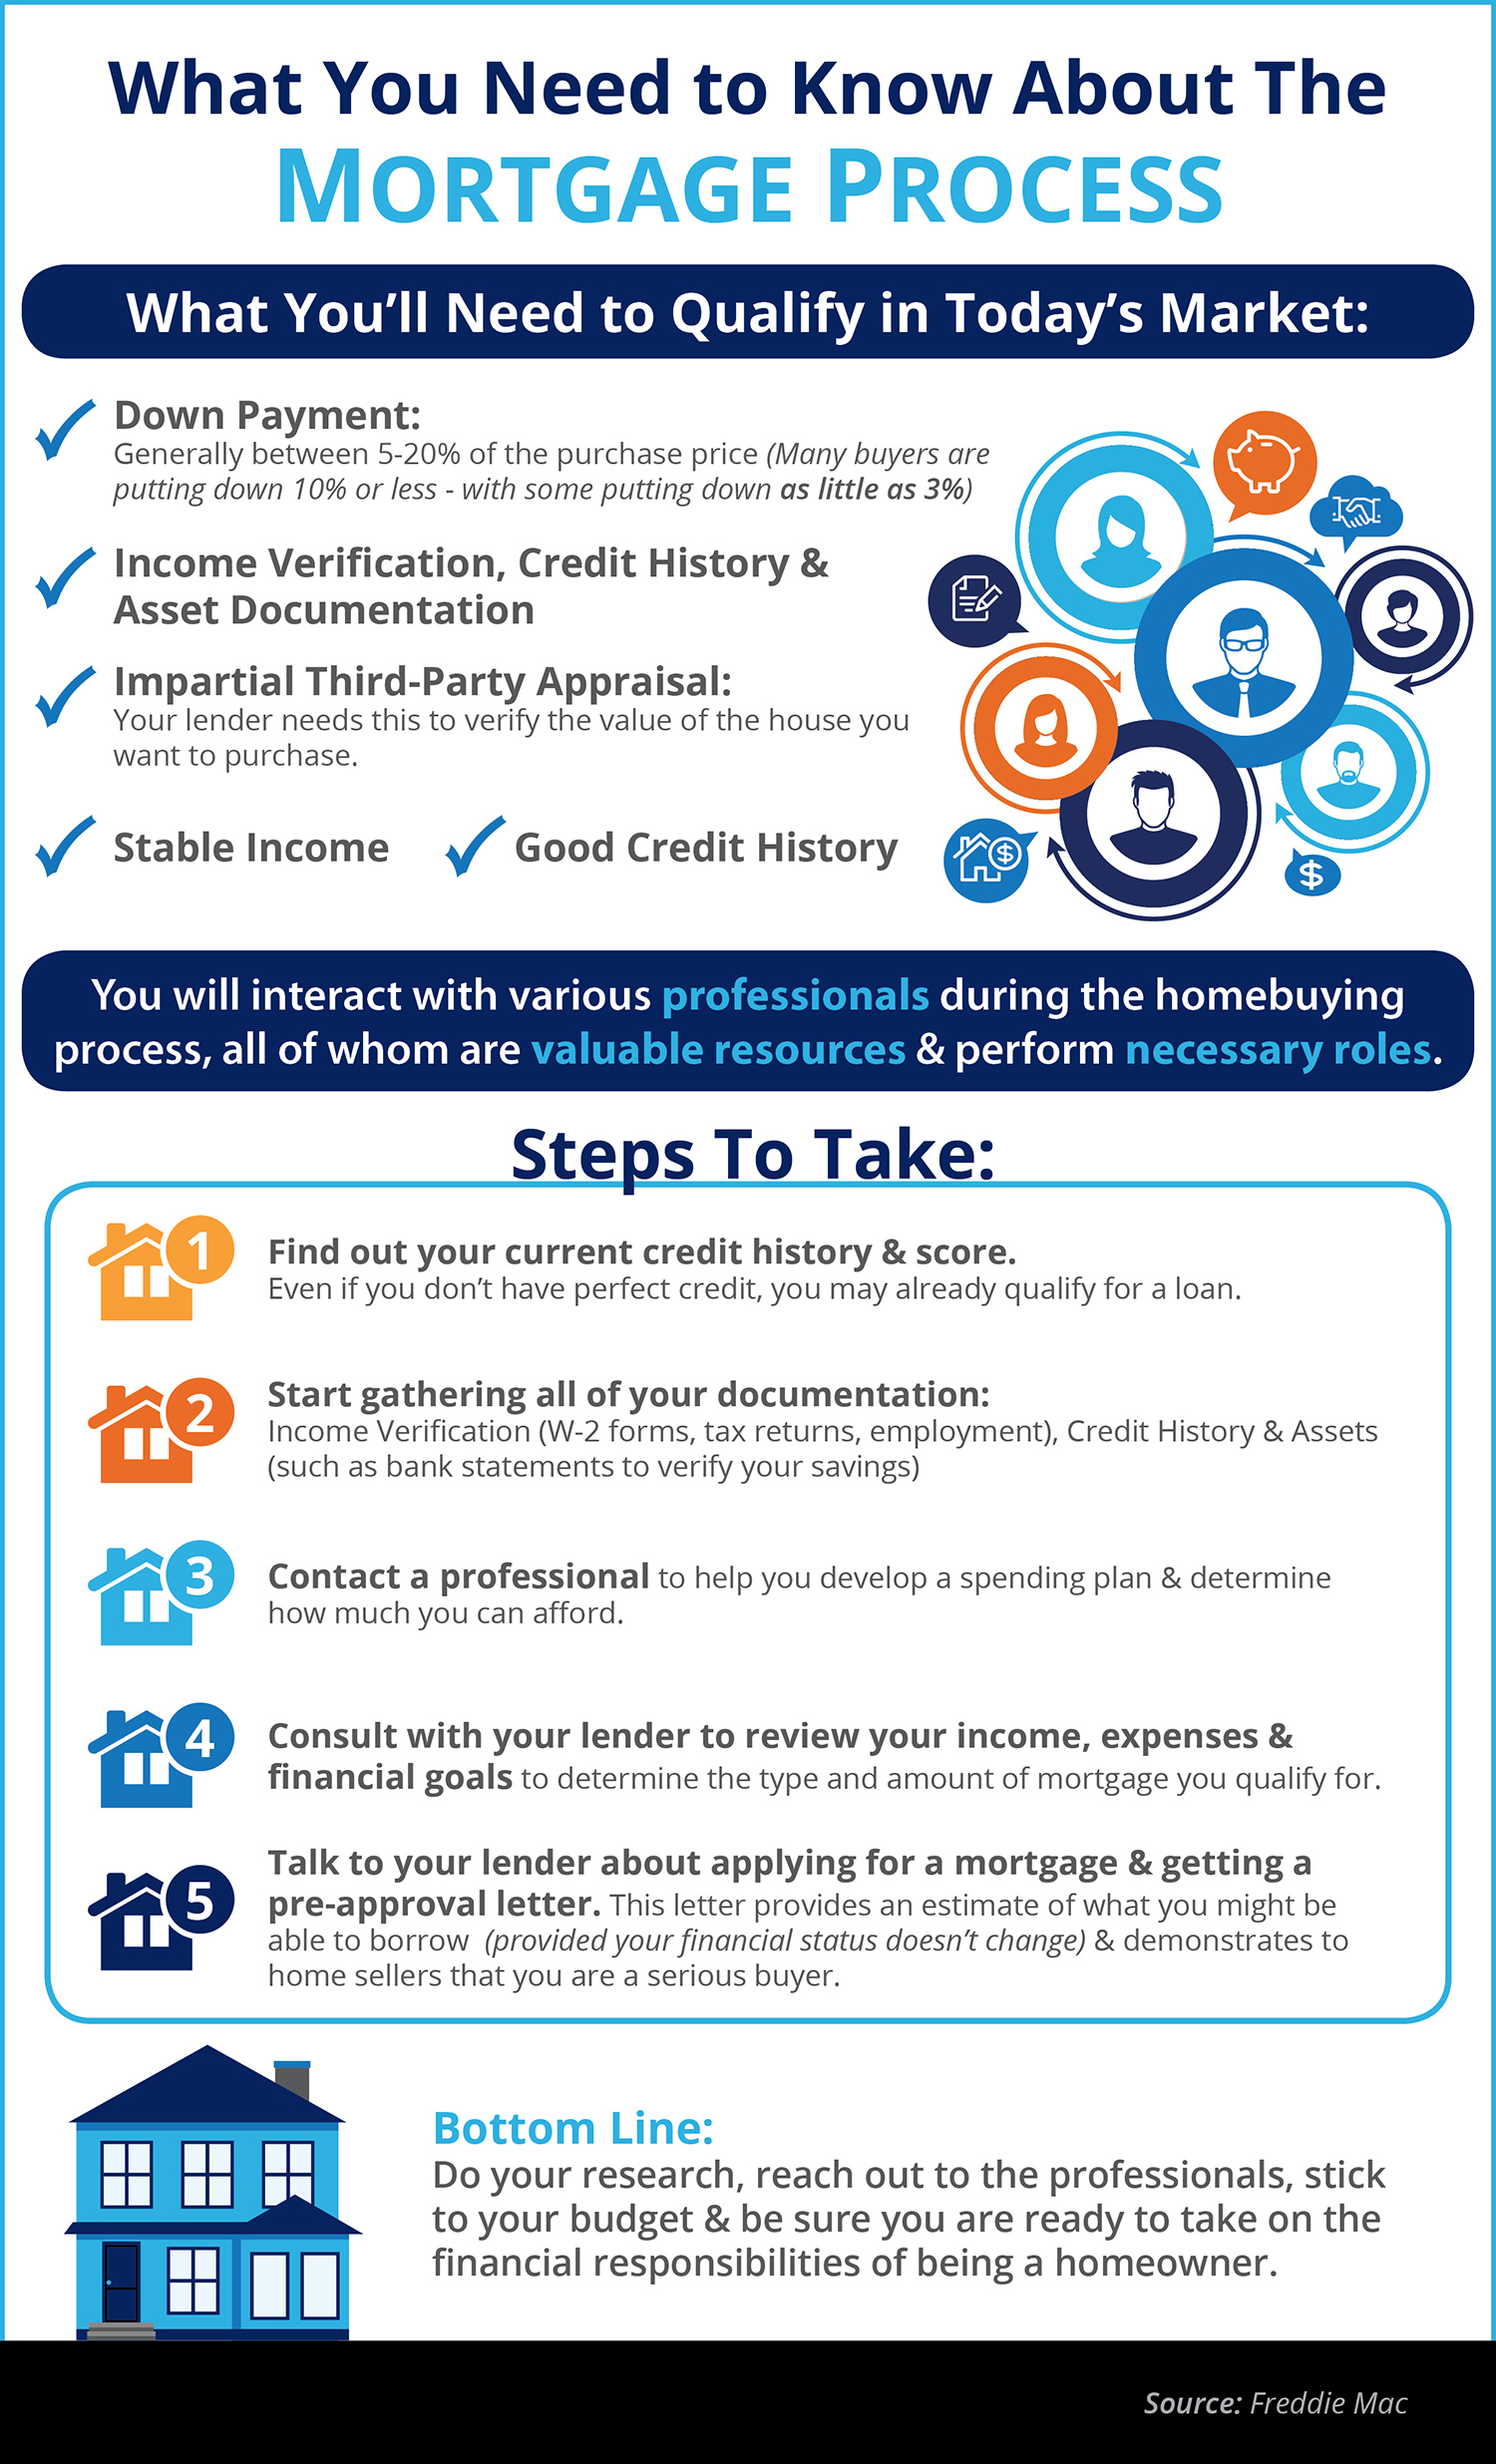 What You Need to Know About the Mortgage Process [INFOGRAPHIC] | Bridge Builders